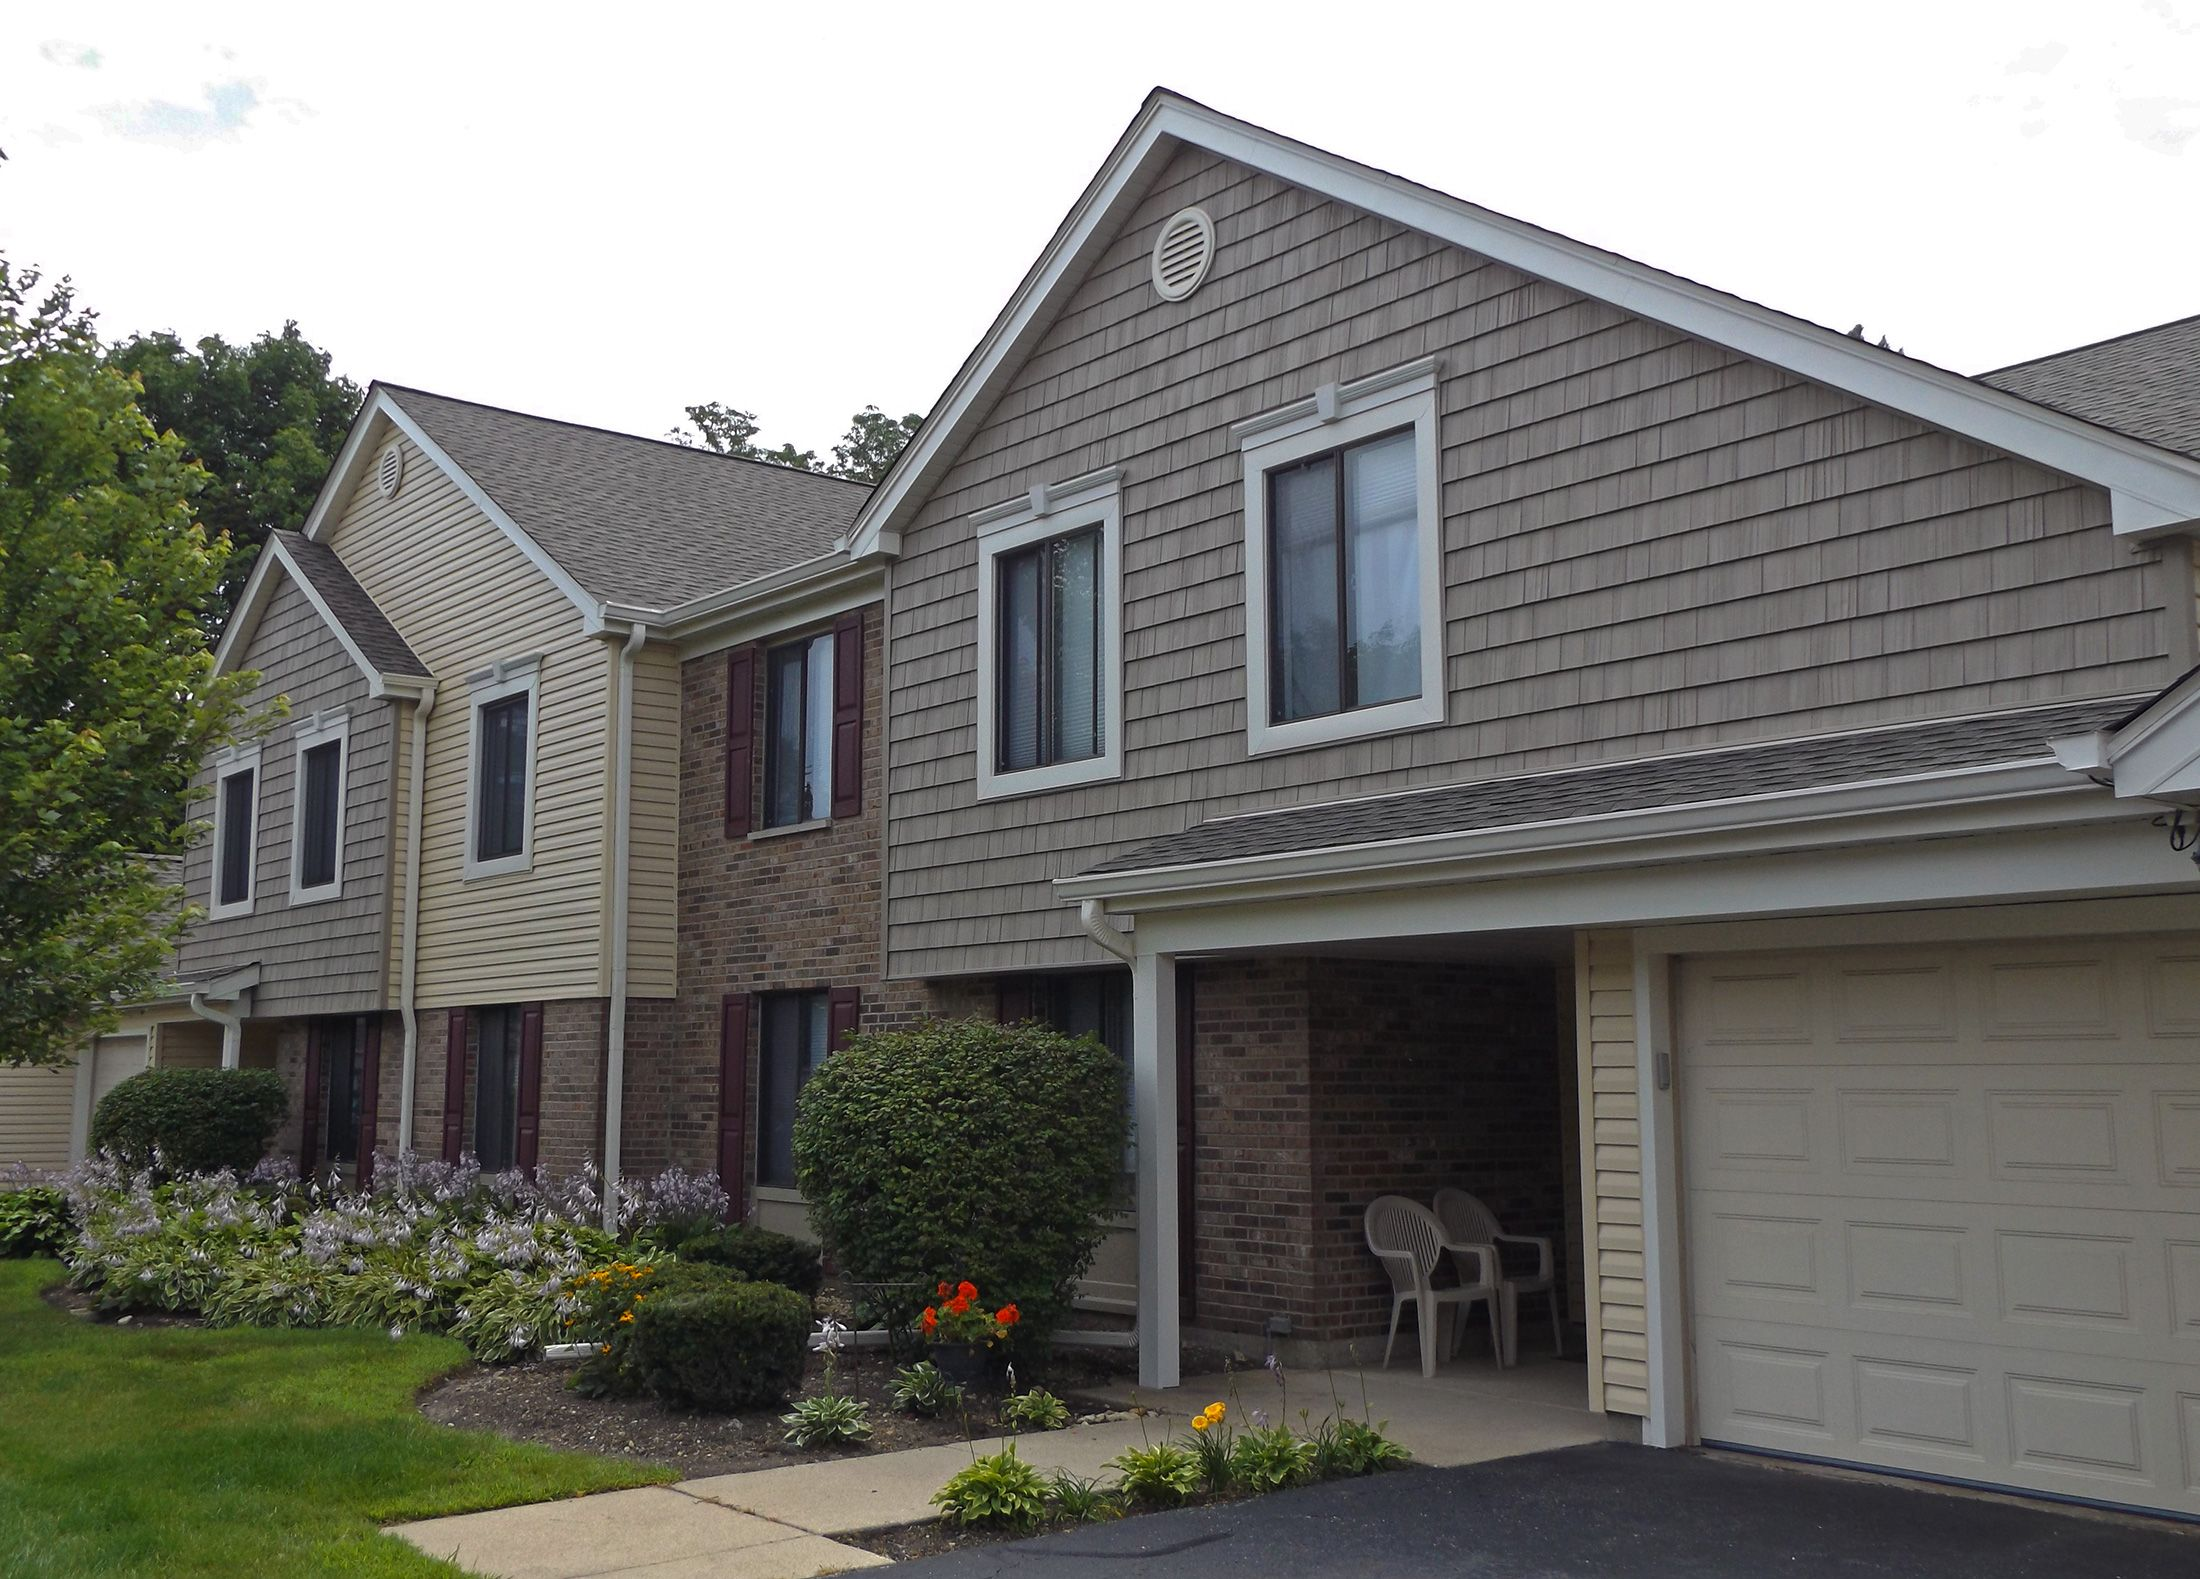 Our Other Completed Multi Family Project With Vinyl Siding And New Roof Installation In Winfield Il Does Your Con Roof Installation Installing Siding Remodel